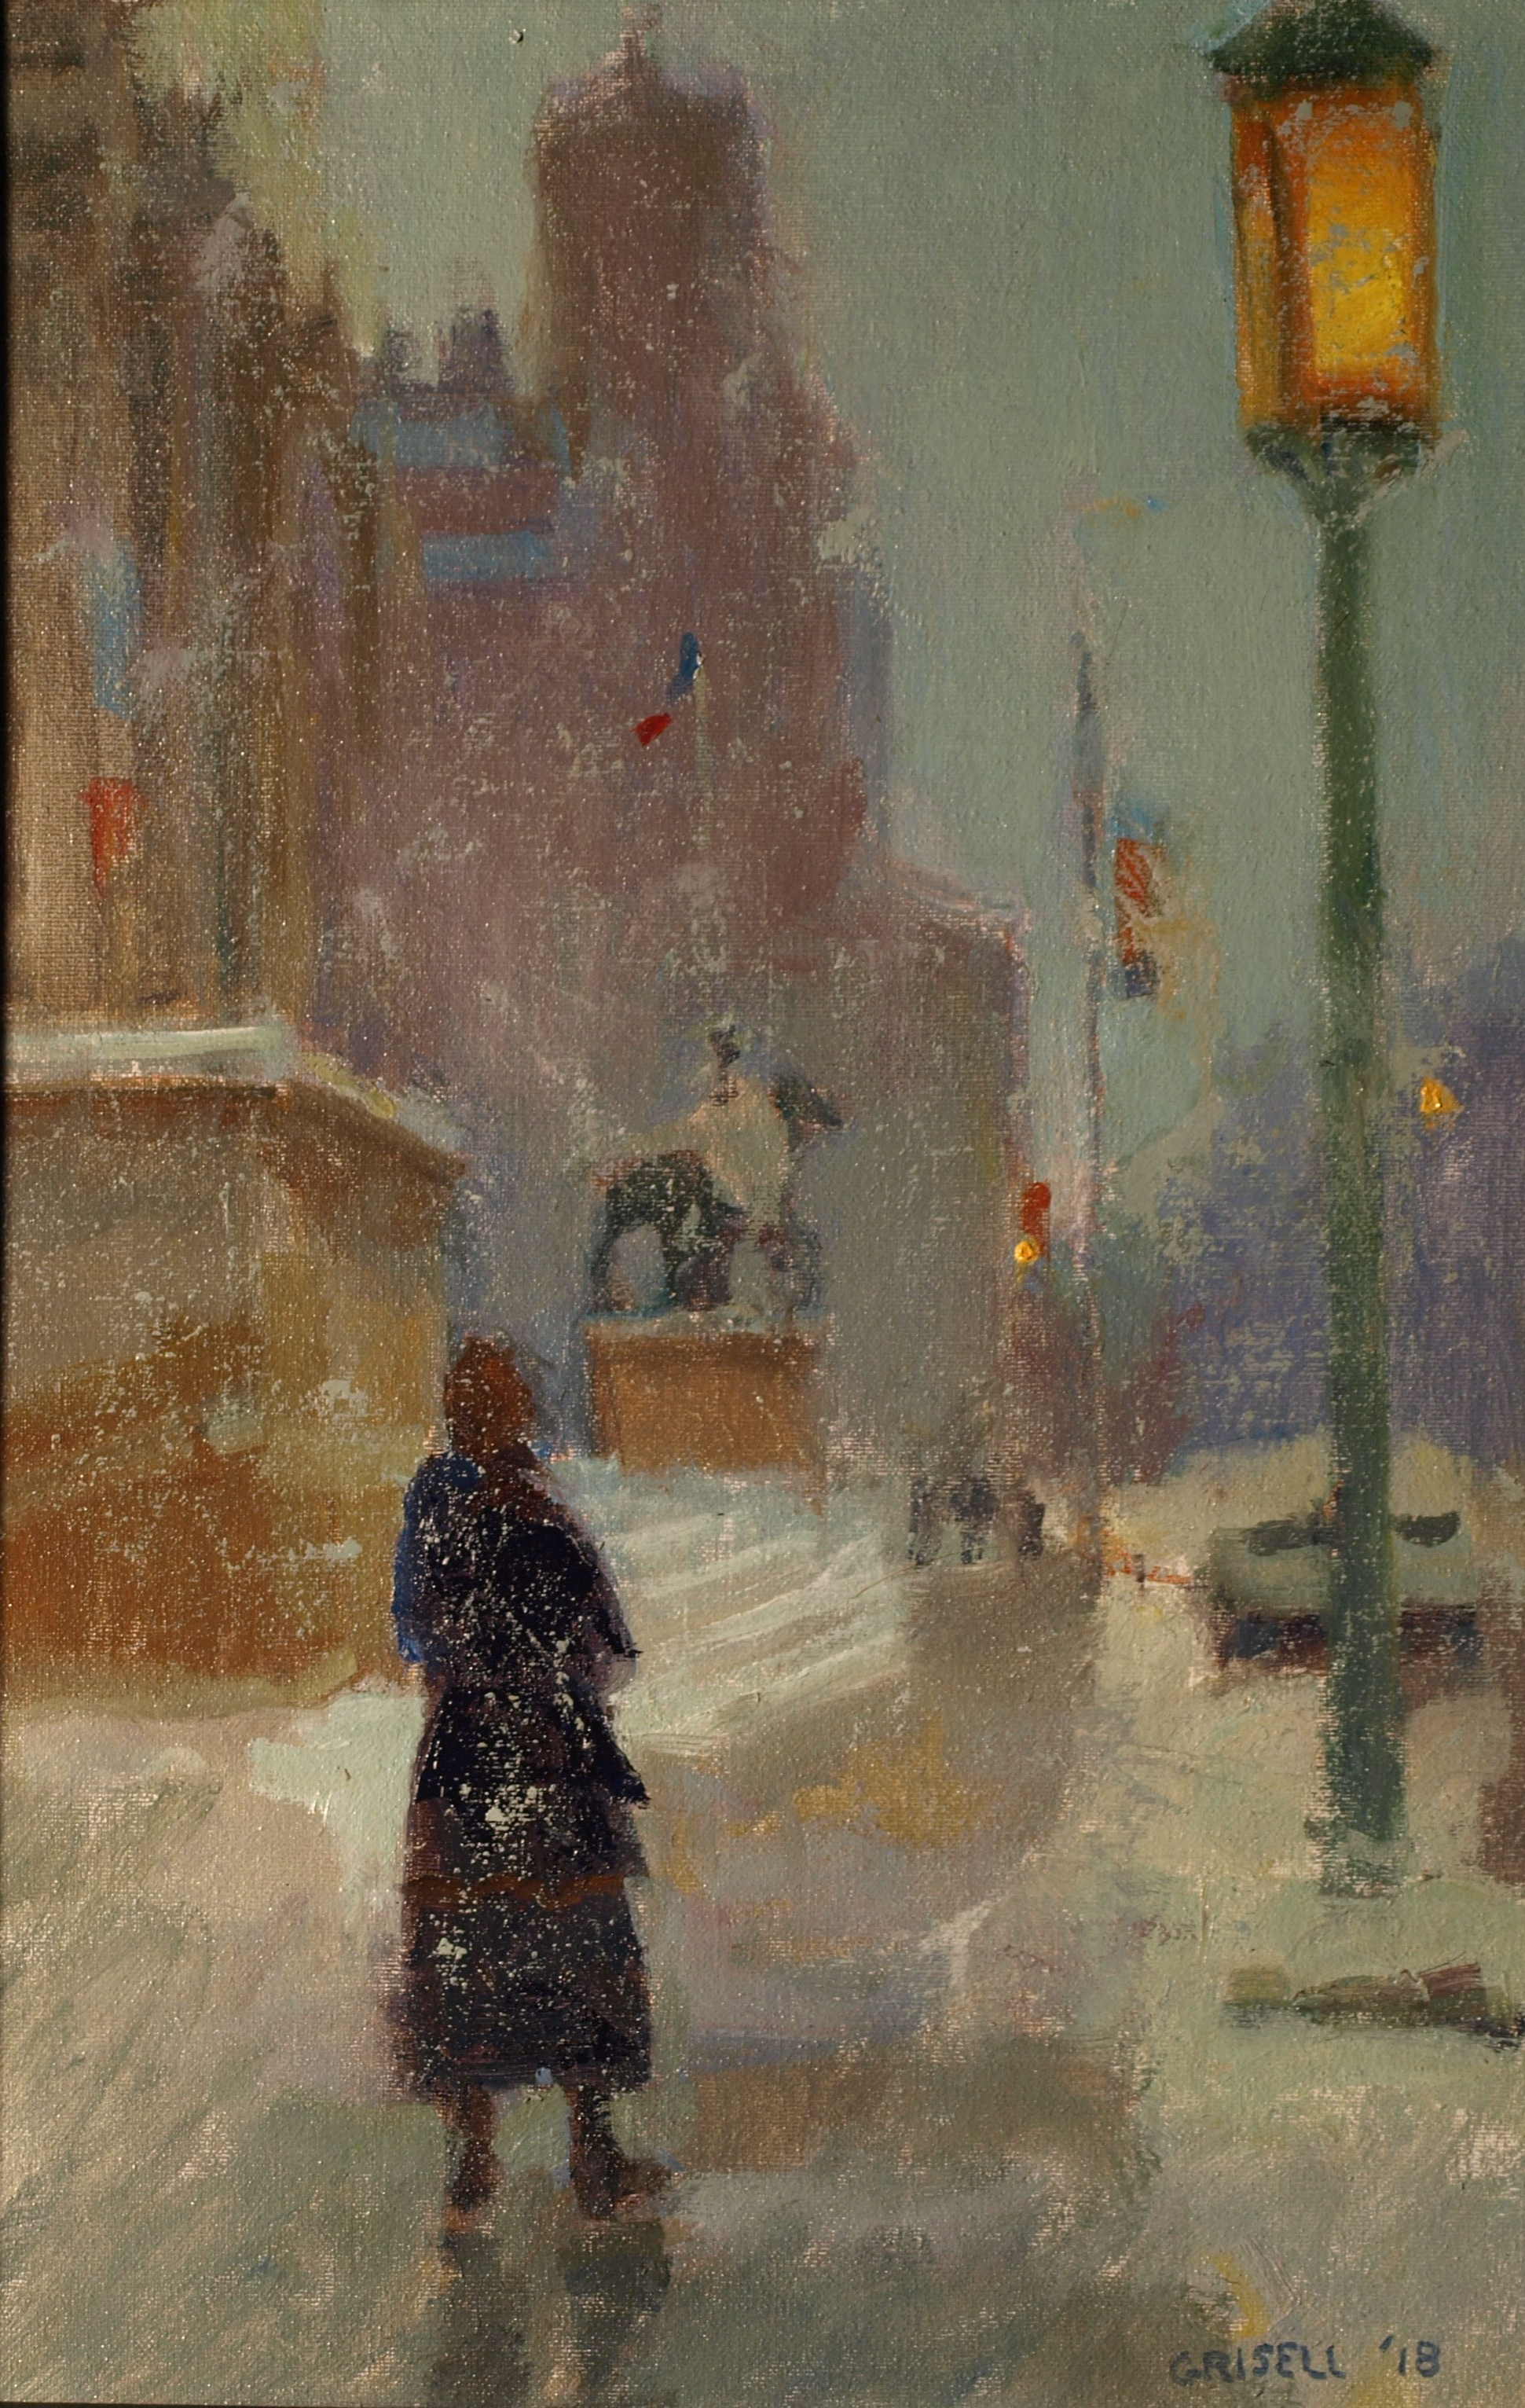 City Snow Storm, Oil on Canvas on Panel, 18 x 12 Inches, by Susan Grisell, $300